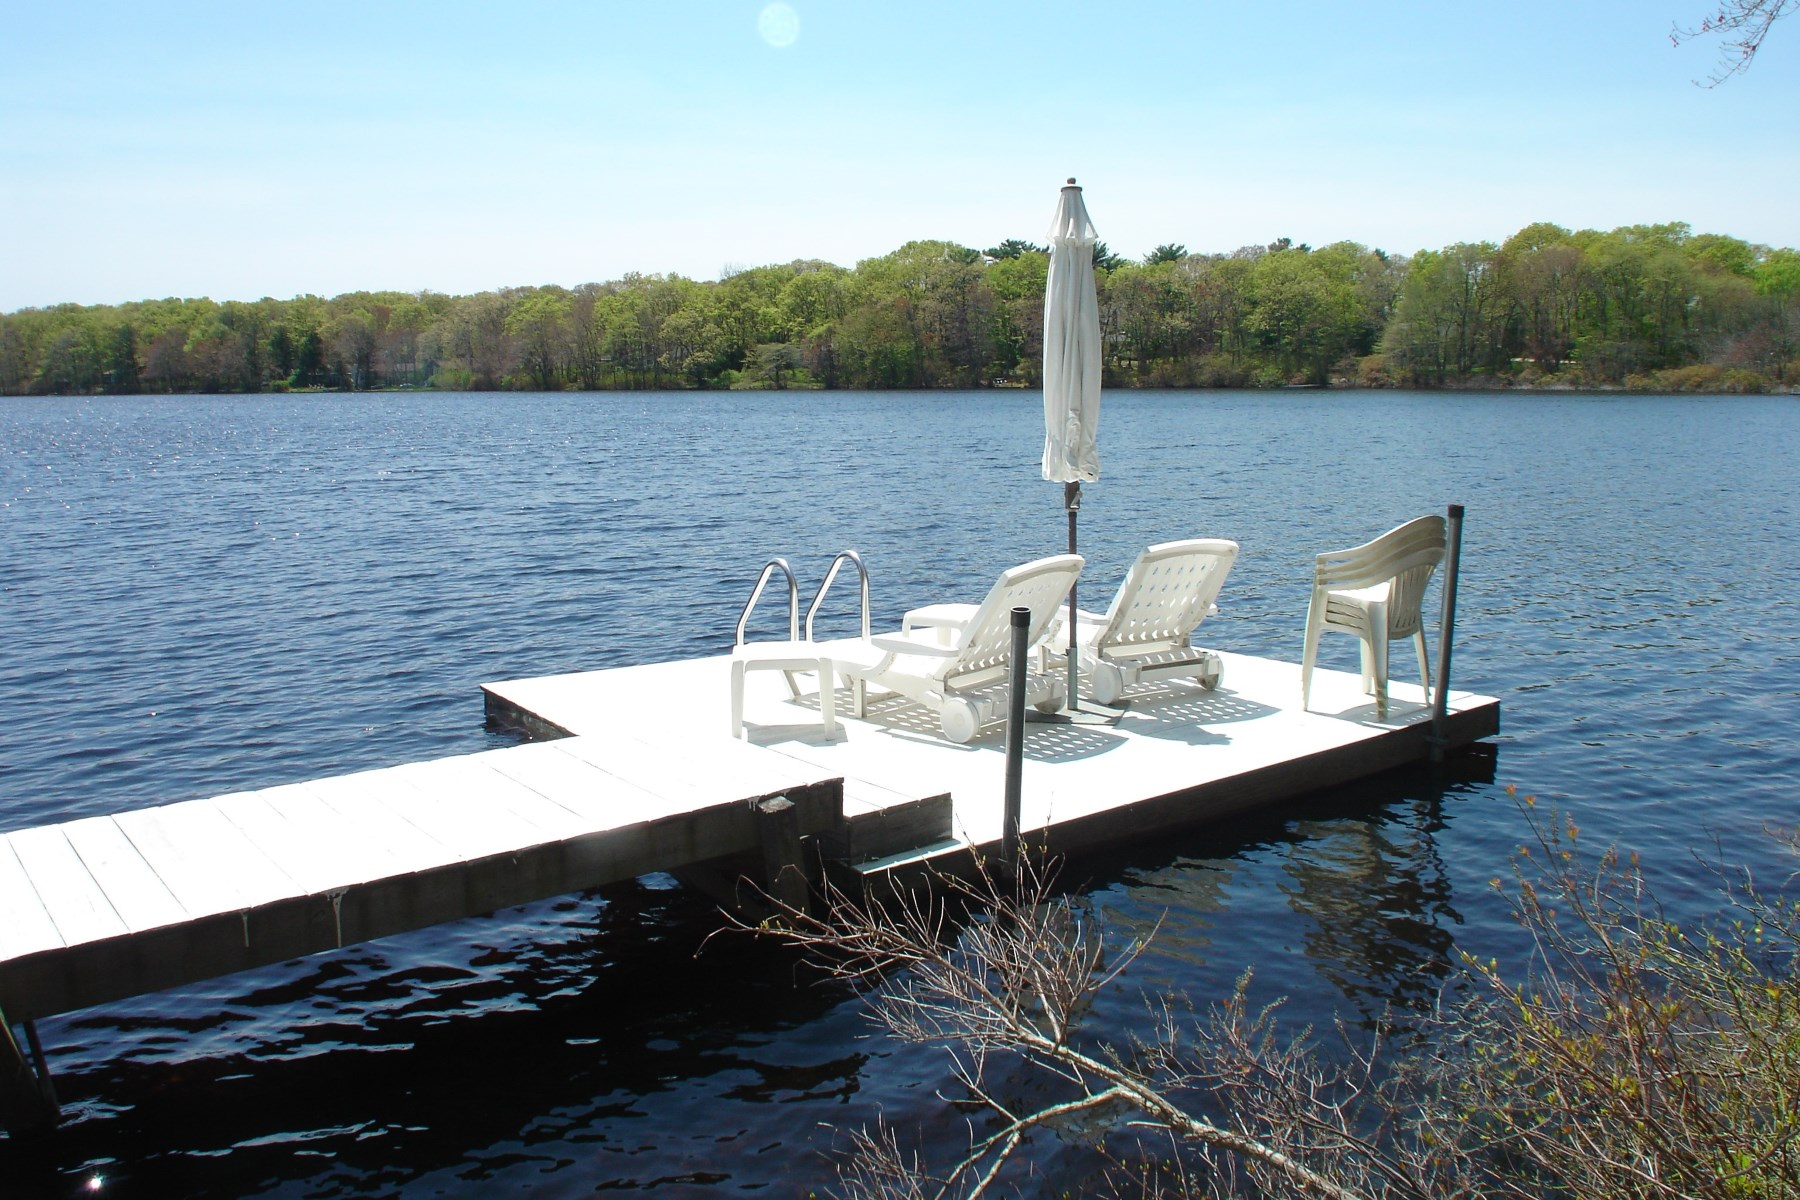 Single Family Home for Rent at Charming Beach House On Lake With Dock 90 Little Fresh Pond Rd Southampton, New York, 11968 United States